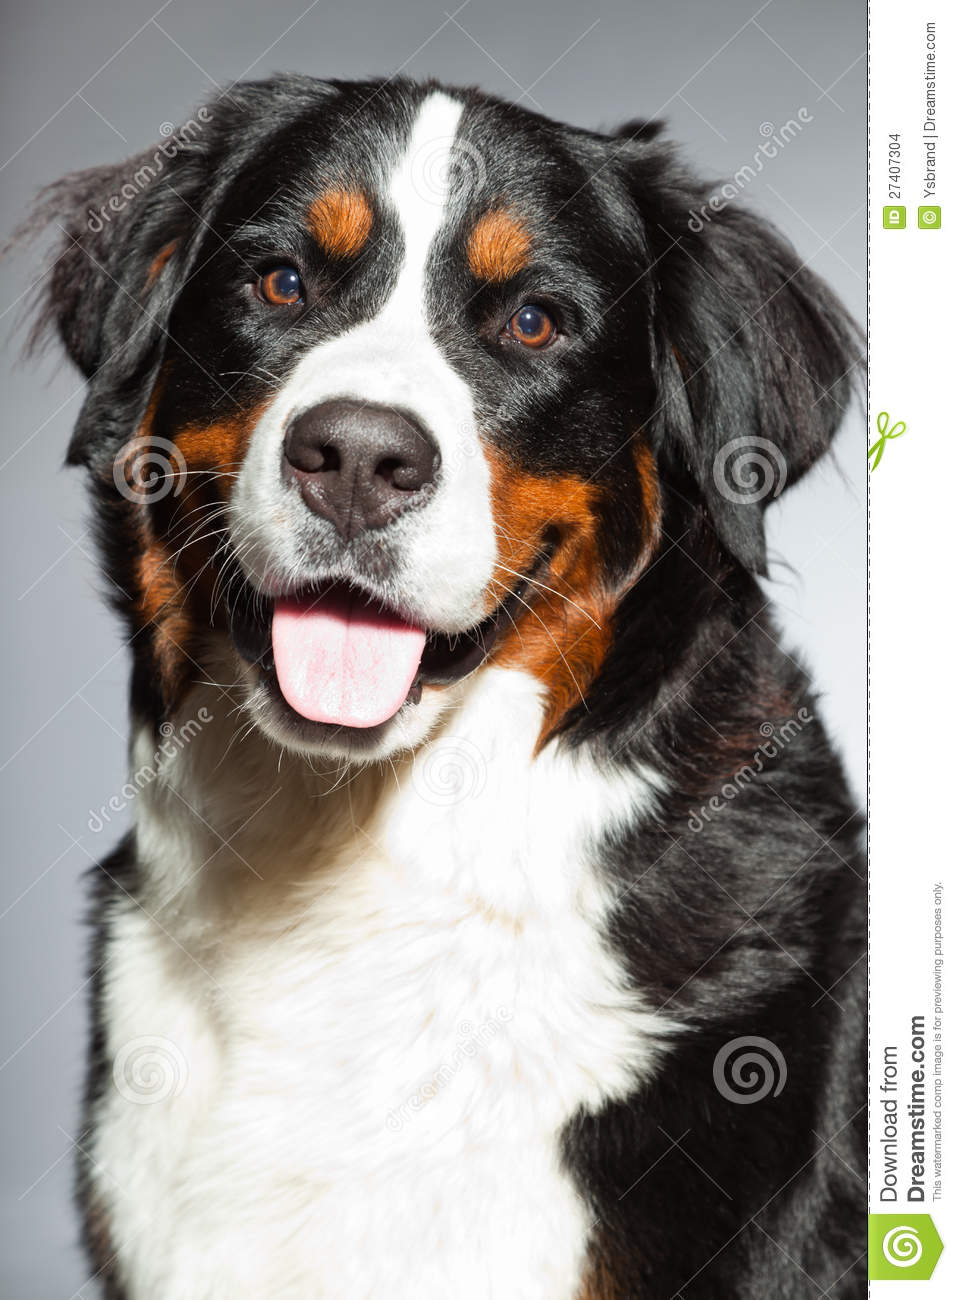 Young Berner Sennen Dog. Stock Images.